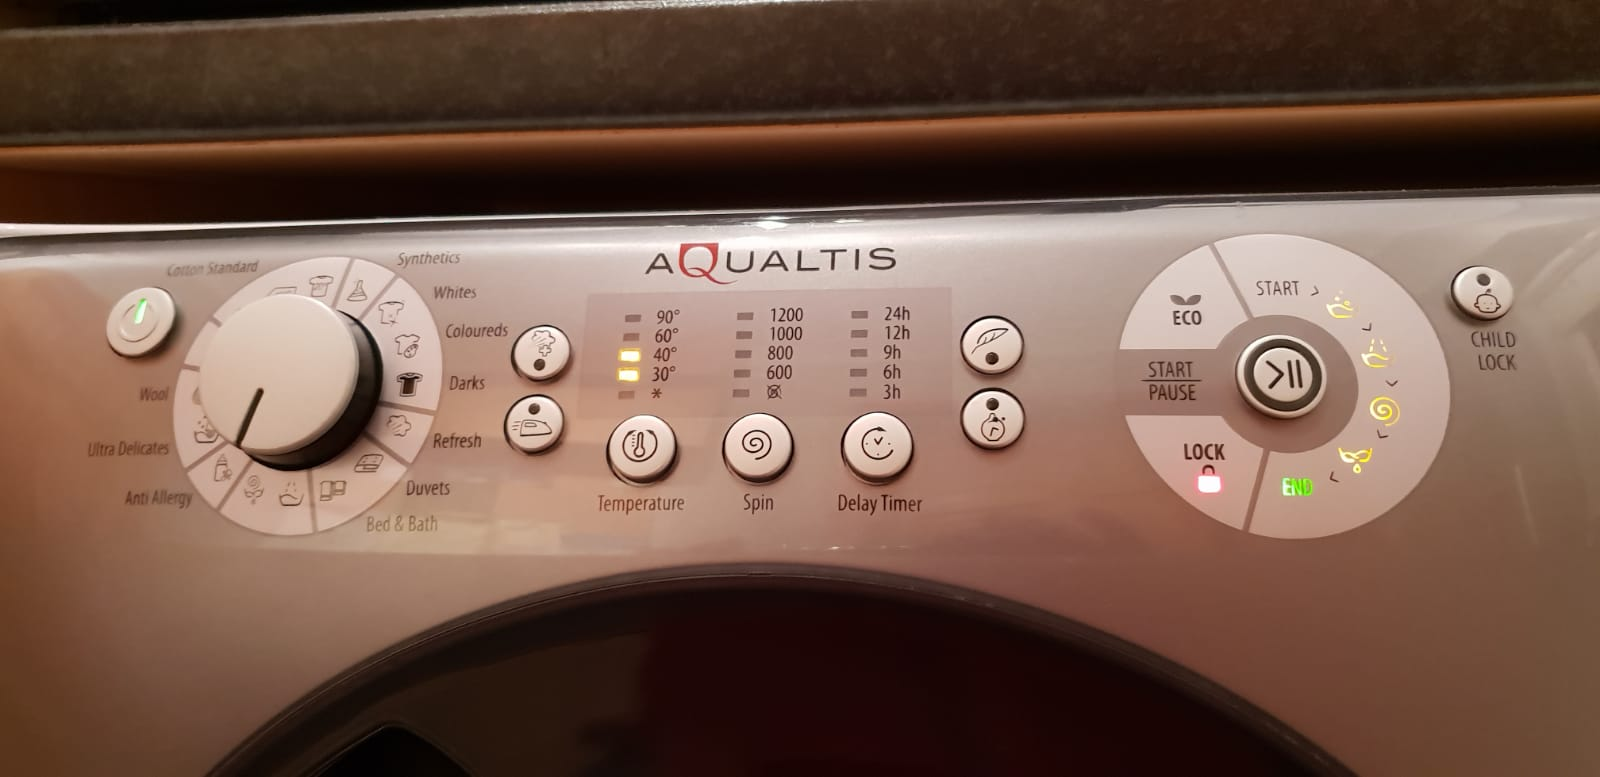 I have a Hotpoint Aqualtic washing machine  It stops at the